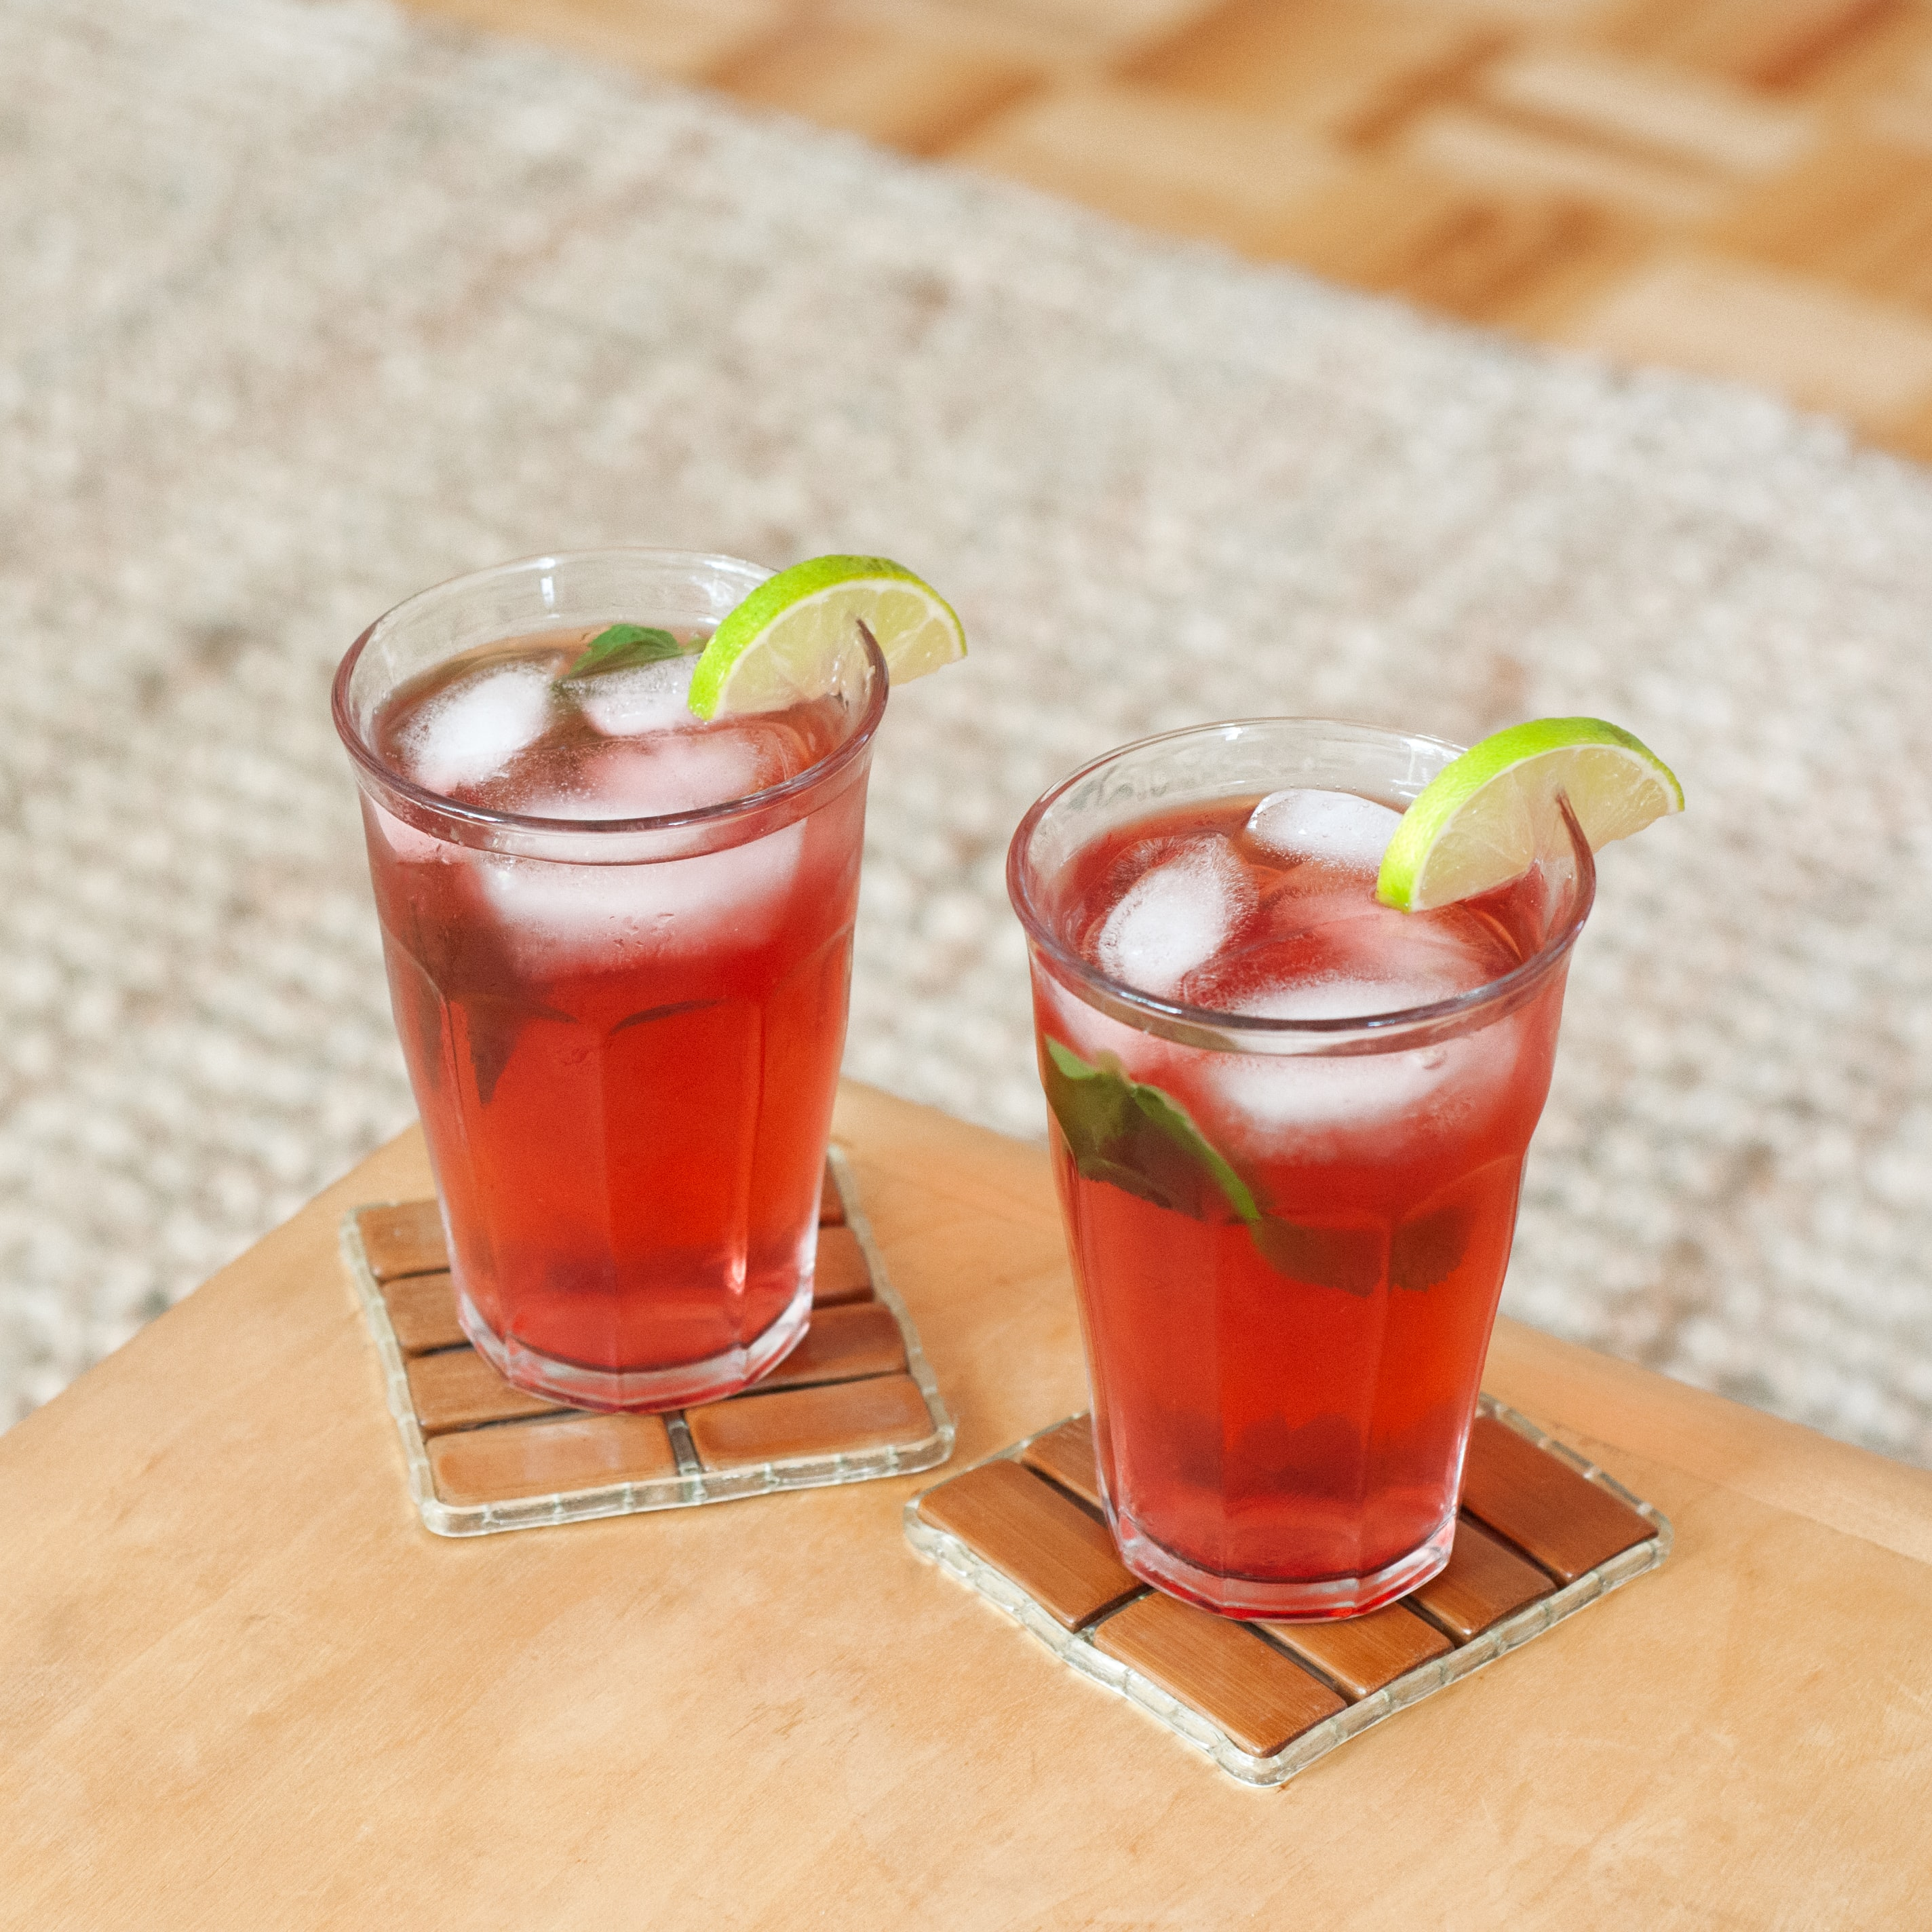 Two glasses with red DOSE Juice, ice, and a slice of lime